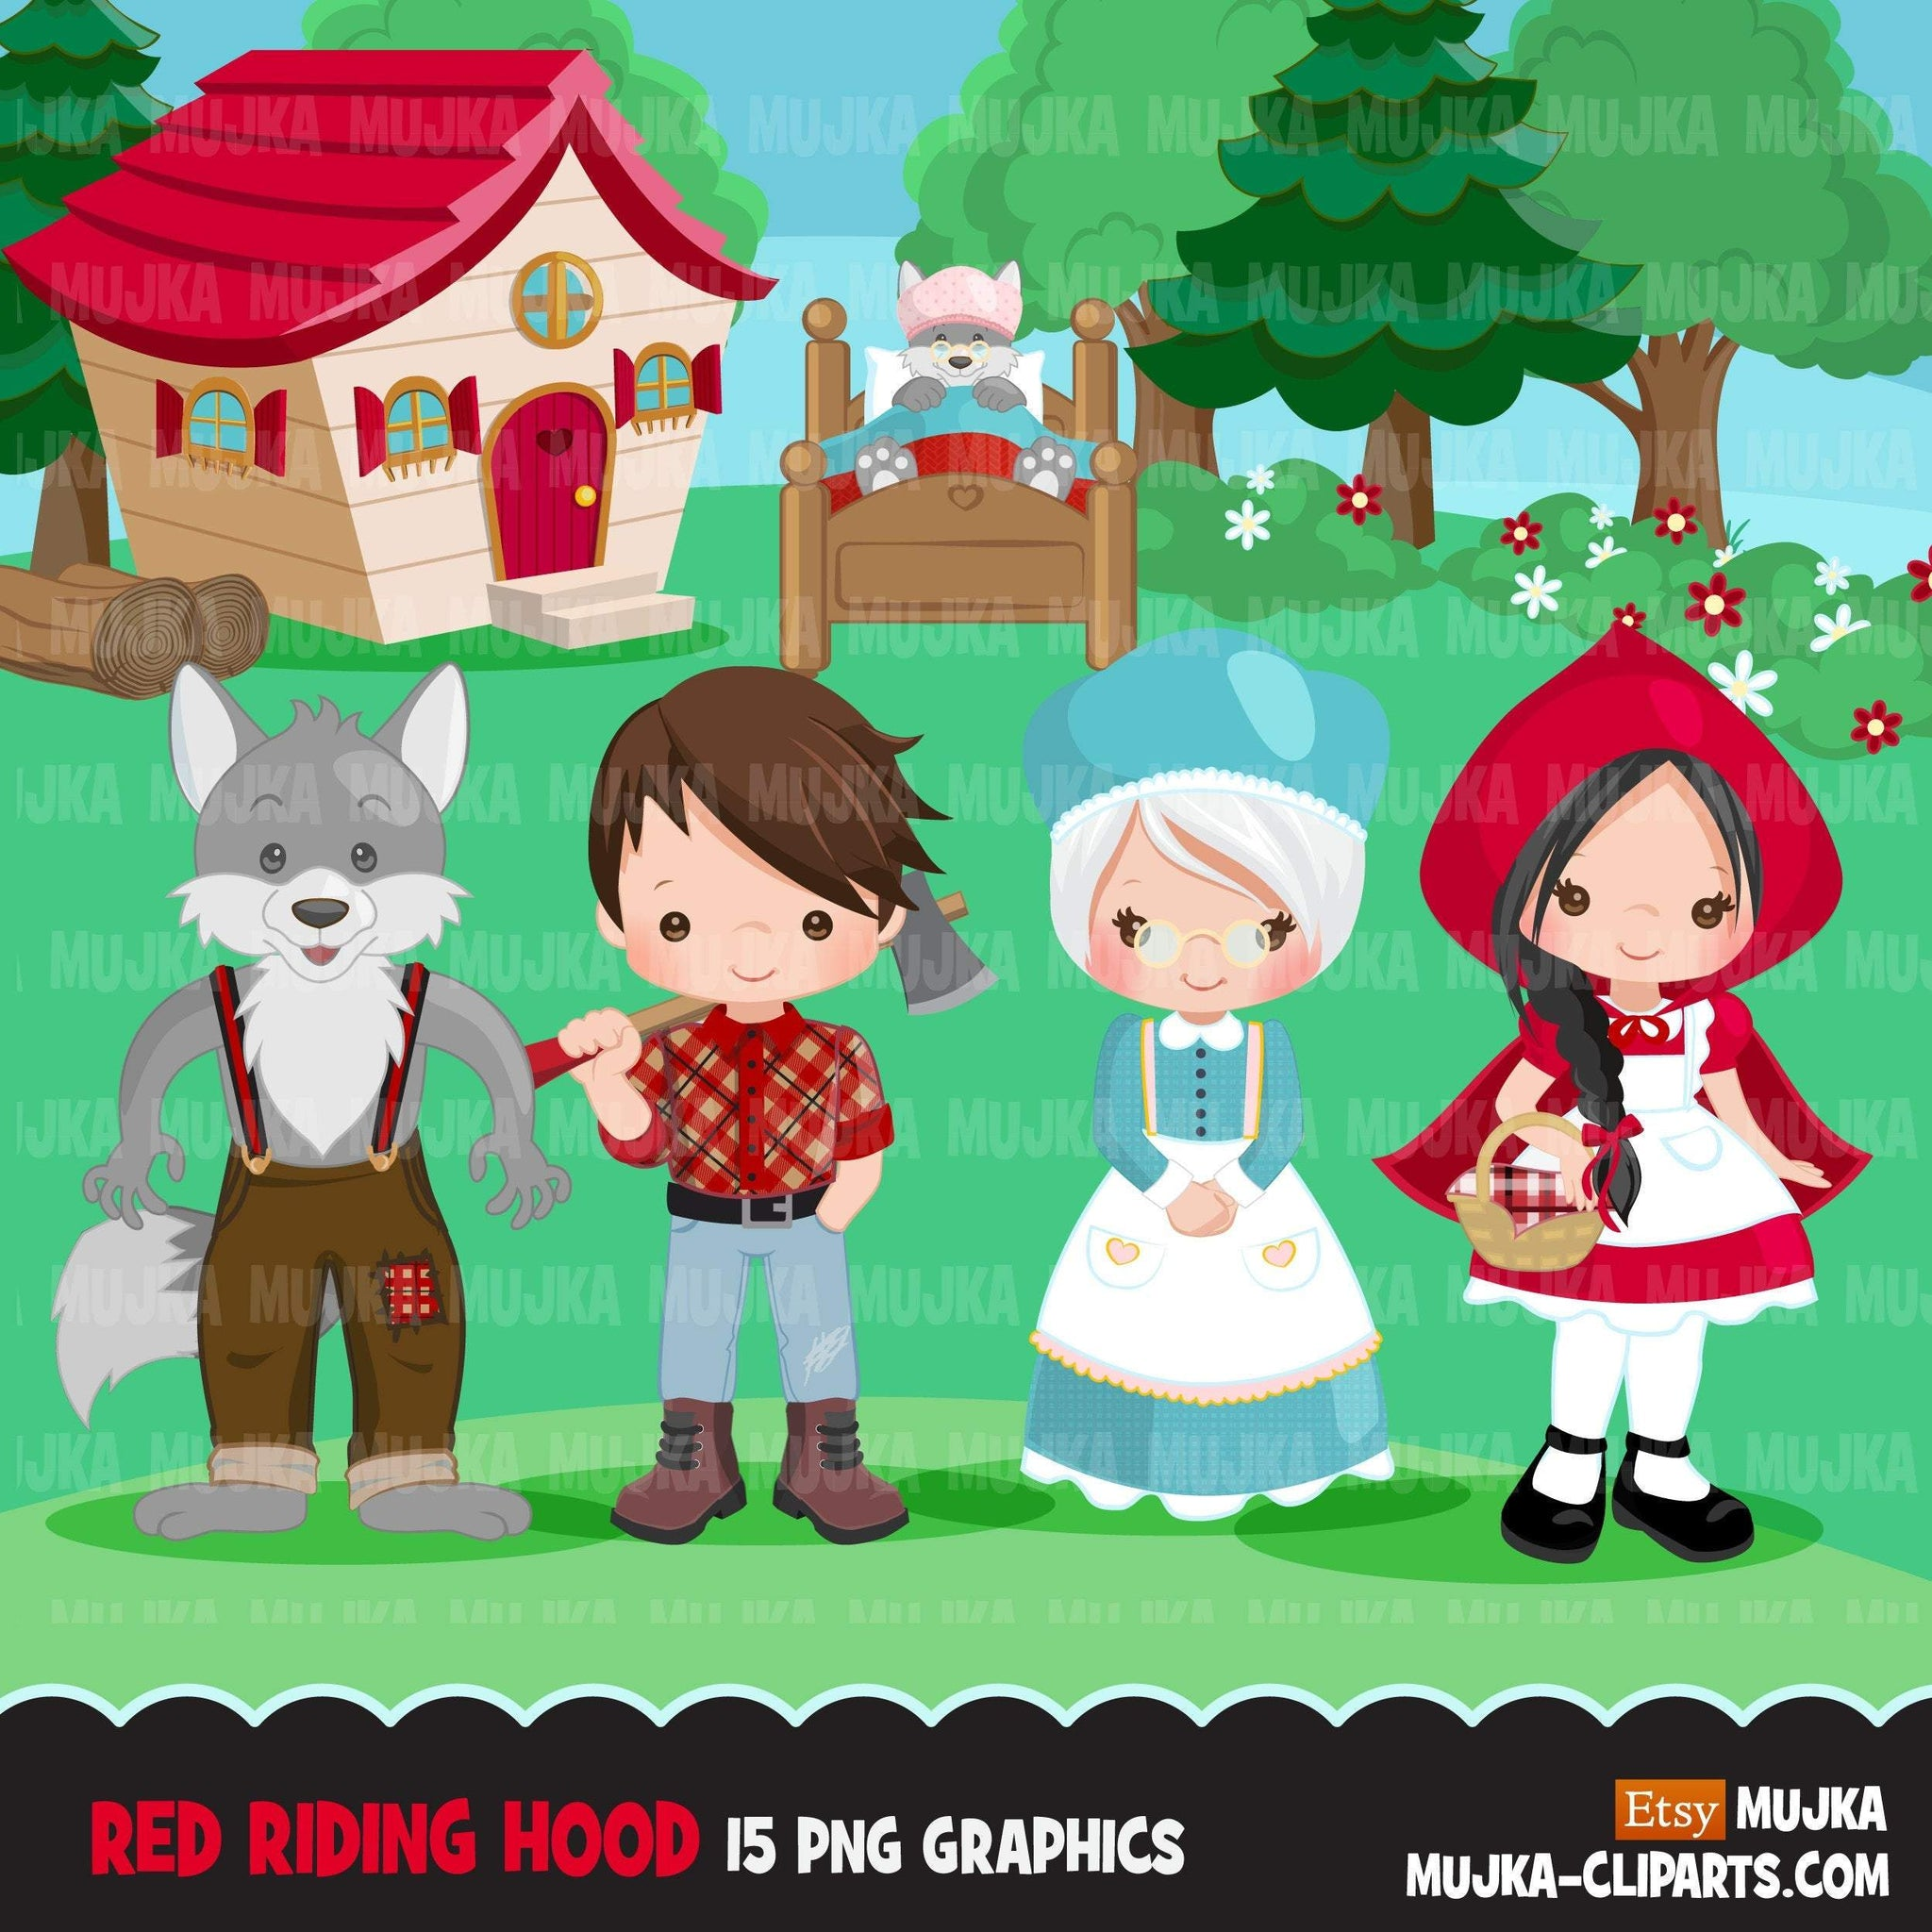 Red Riding Hood Clipart, Cute wolf, woodland, storybook graphics. Boy and girl fairy tale illustrations